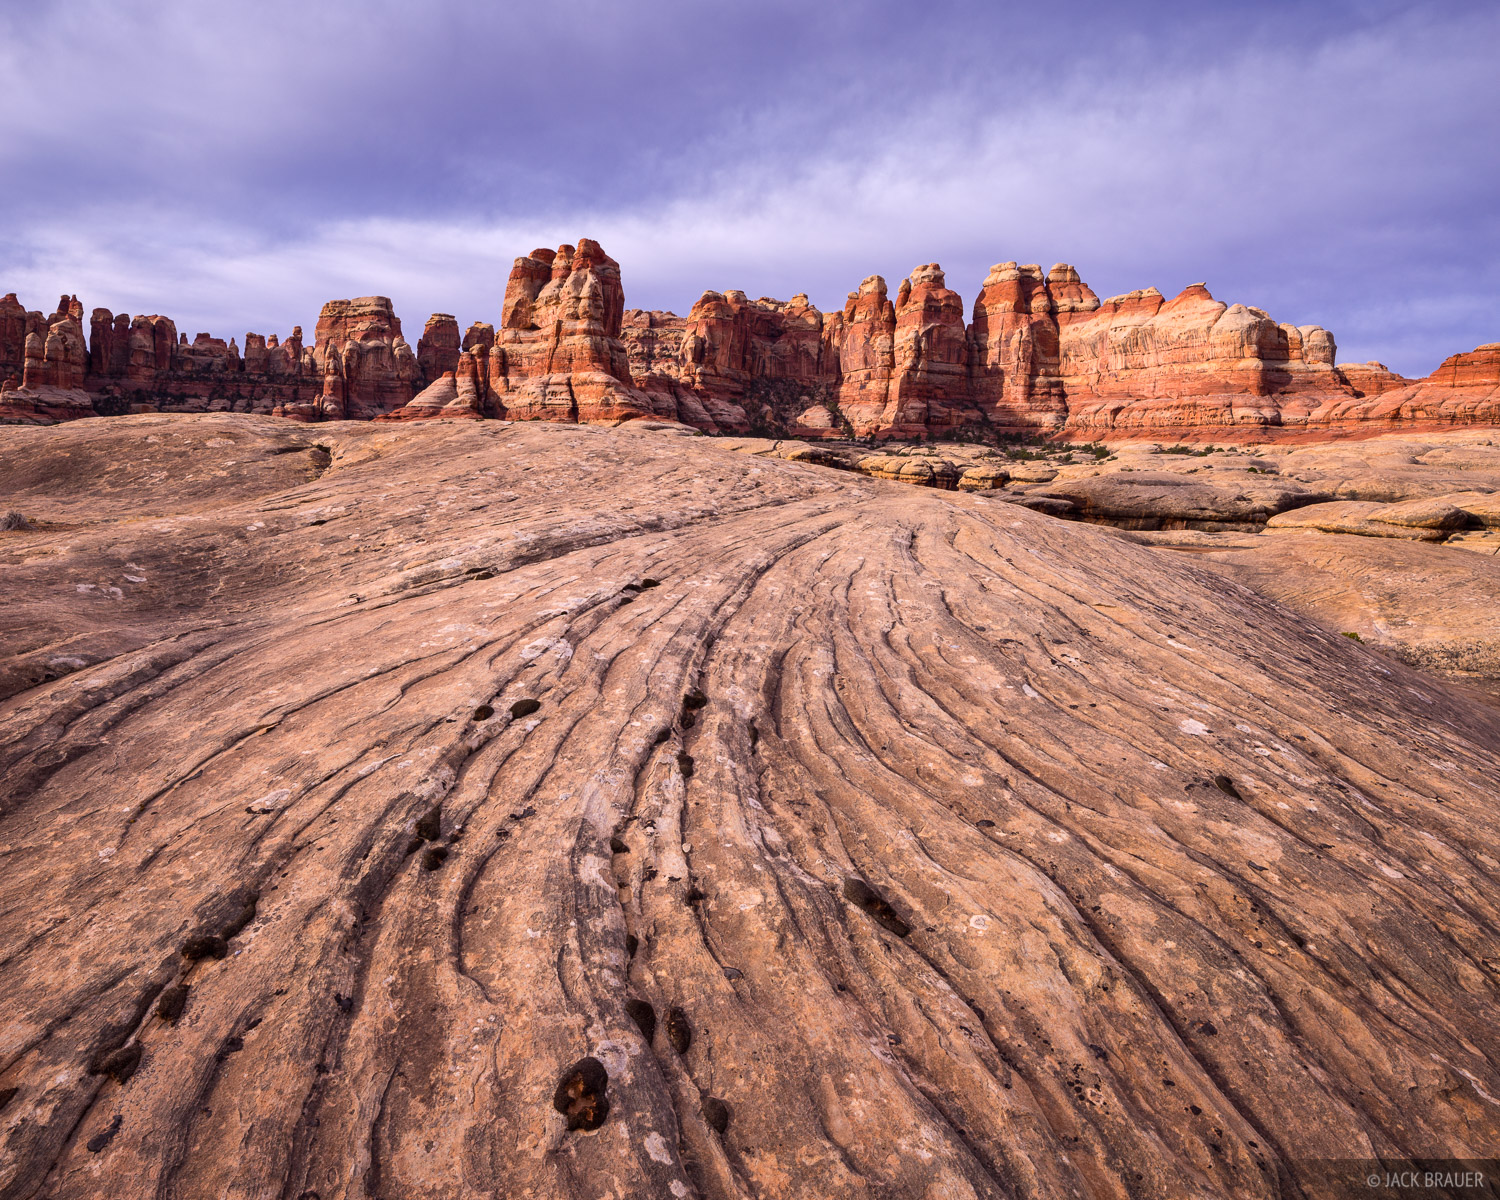 Canyonlands National Park, Needles District, Utah, Elephant Canyon, photo